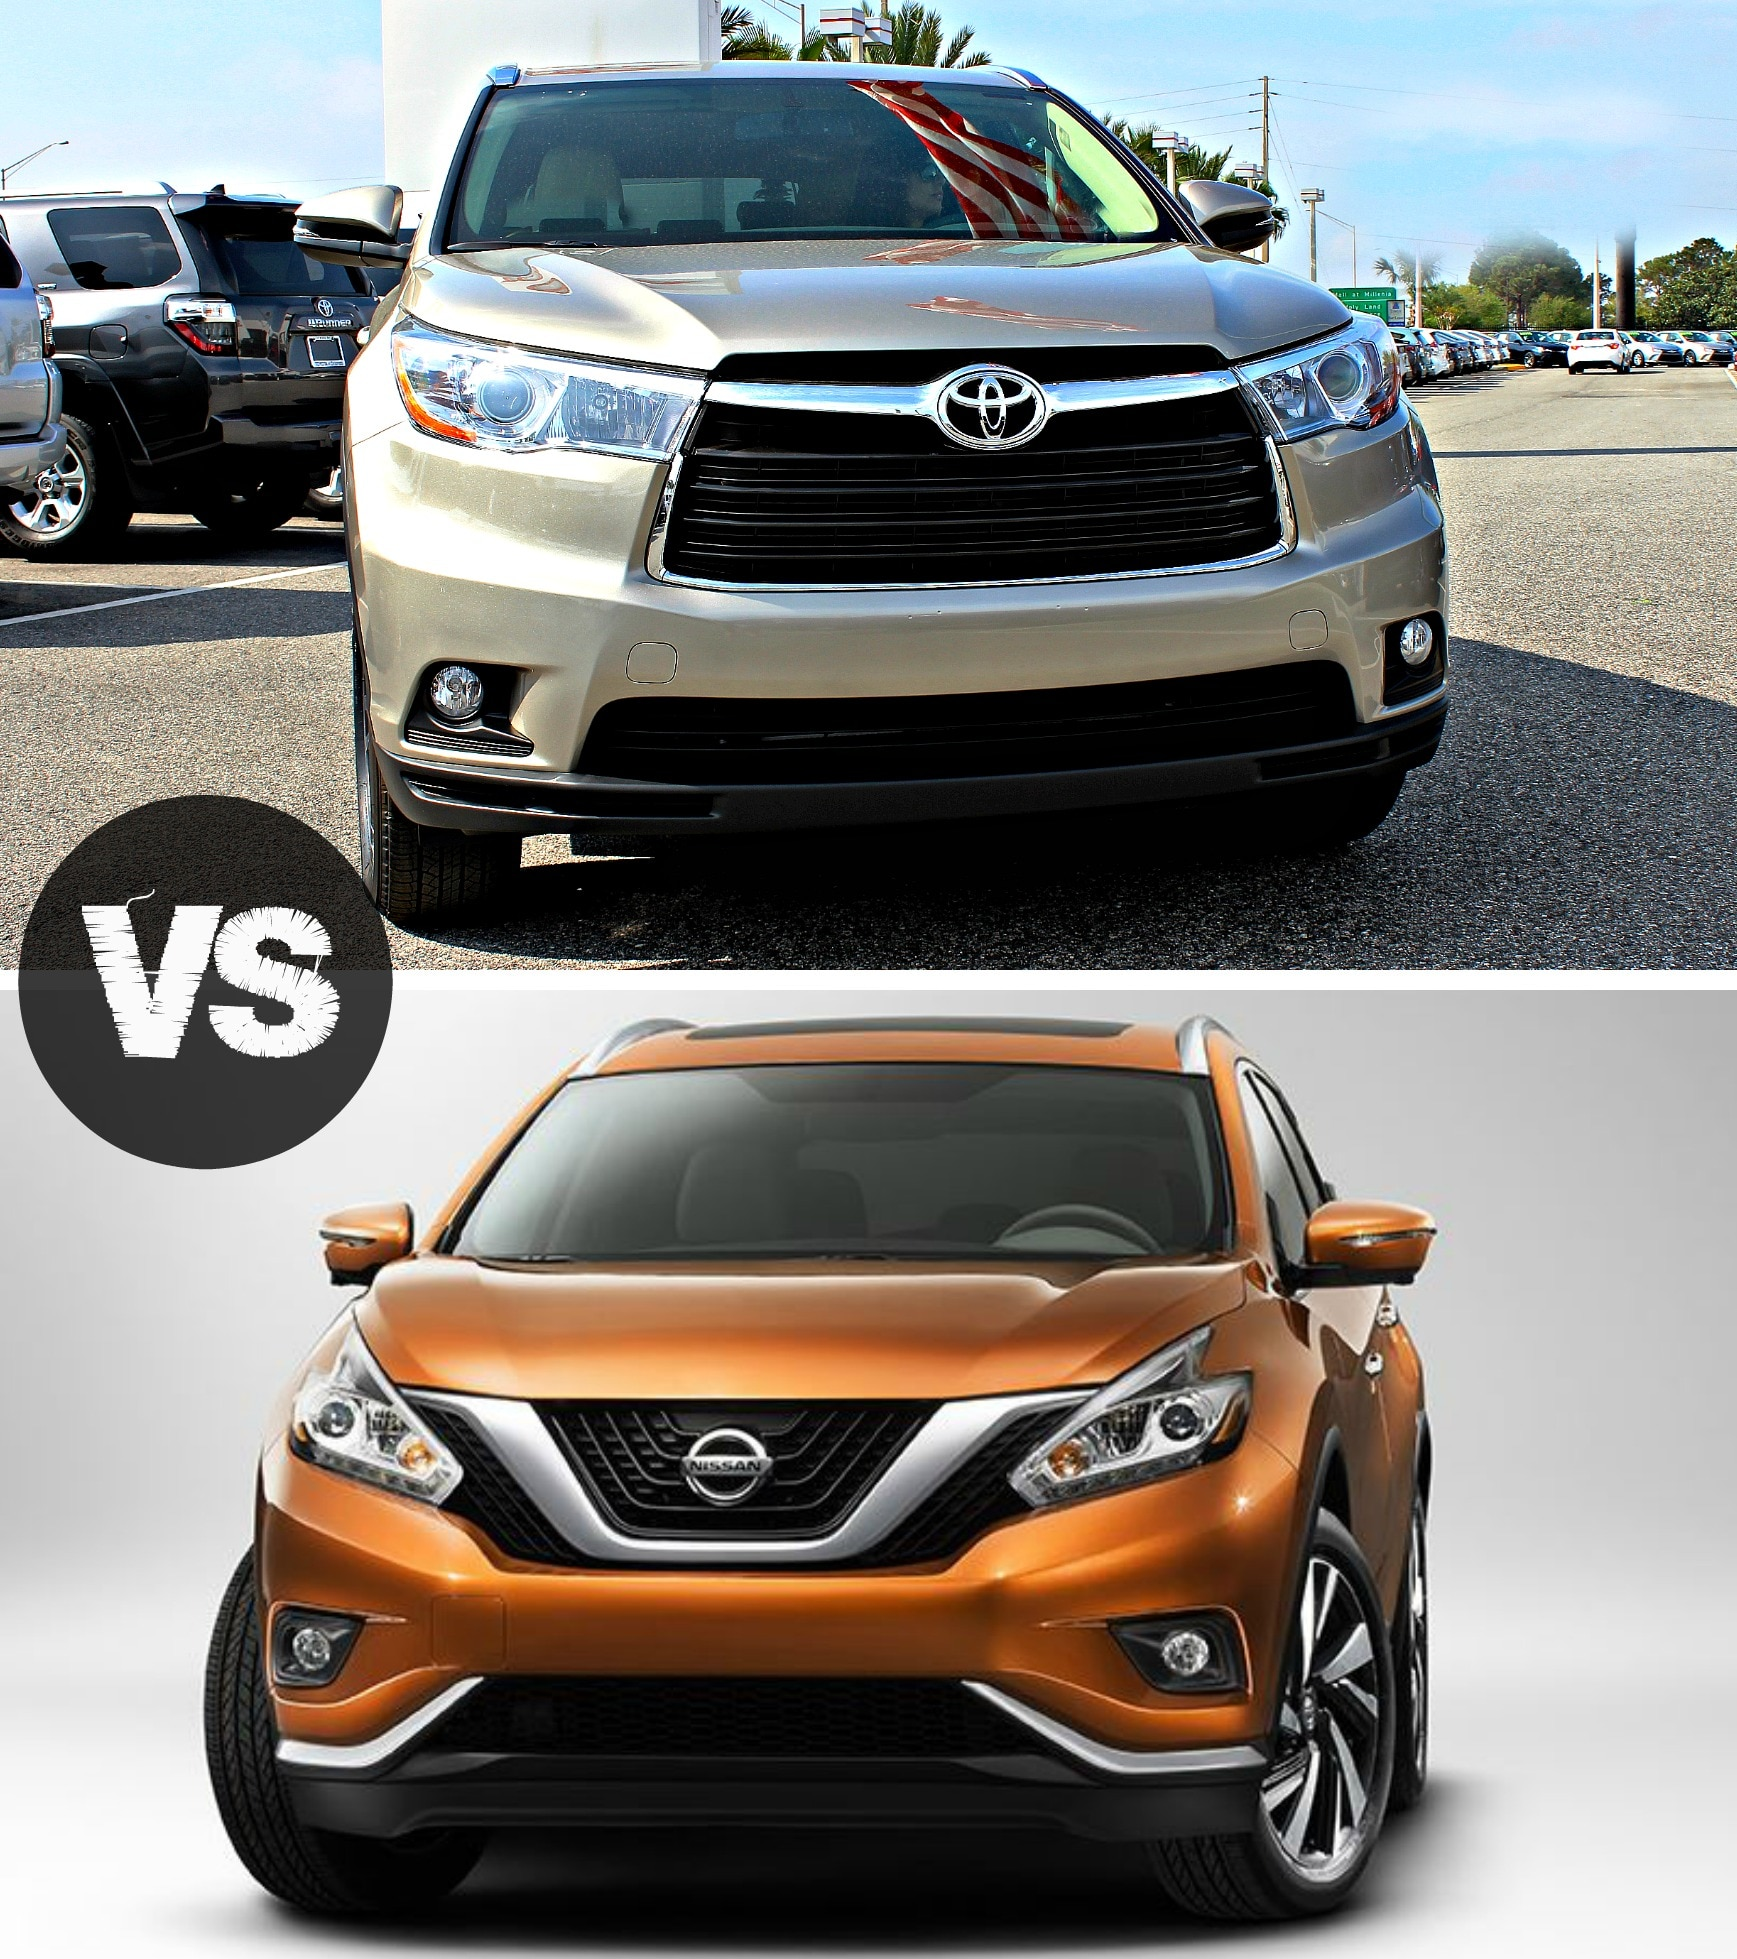 Ford Dealers In Orlando: 2016 Toyota Highlander Vs Nissan Murano